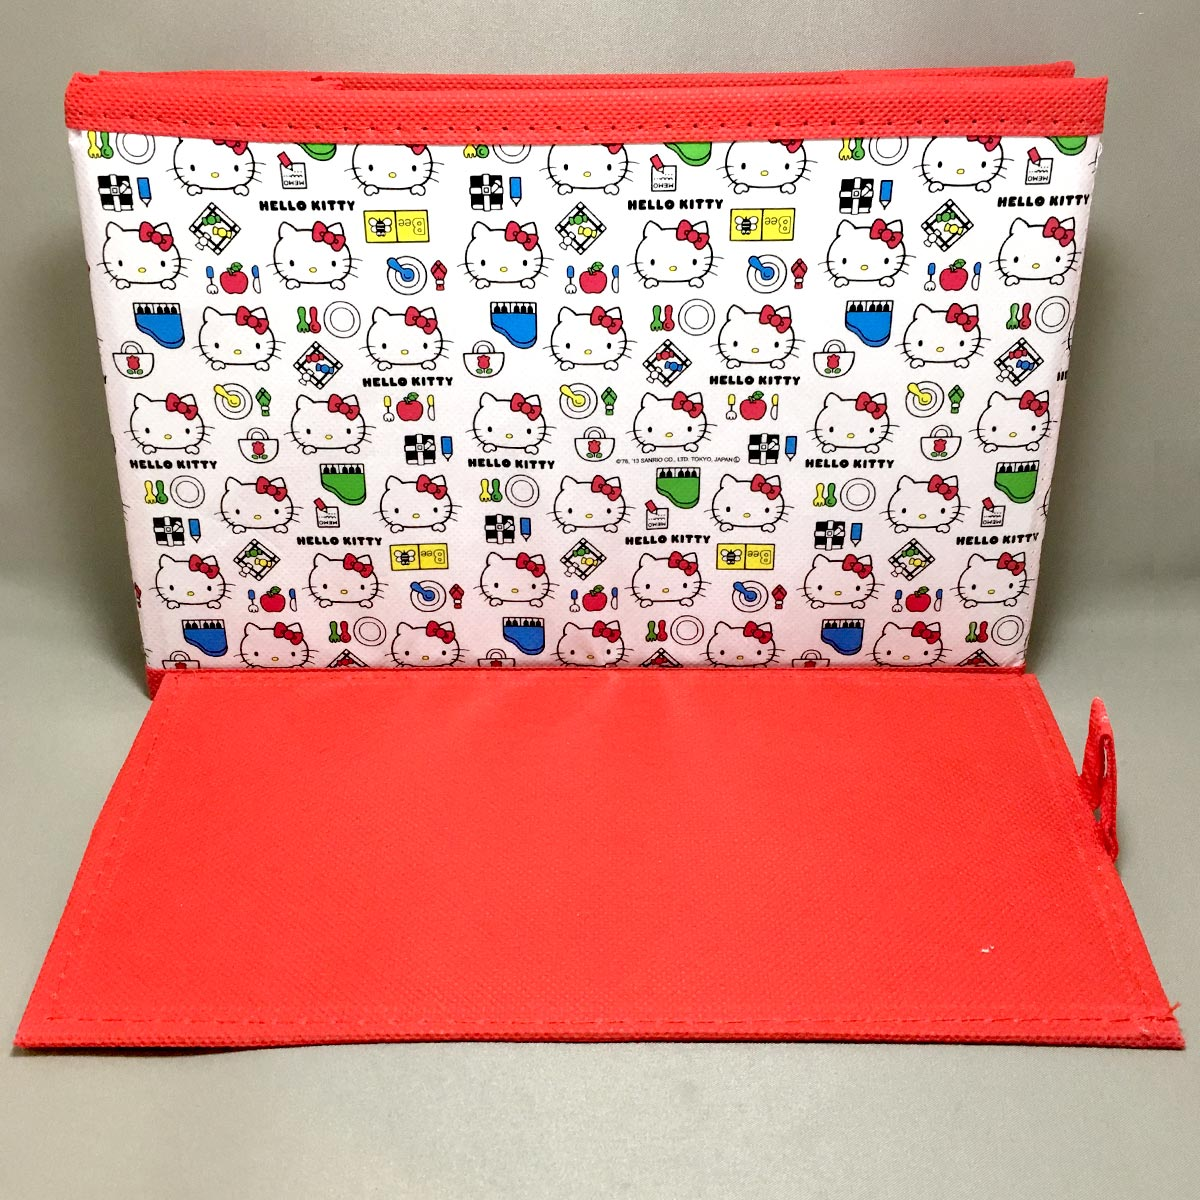 Hello Kitty Foldable Box - side view and base